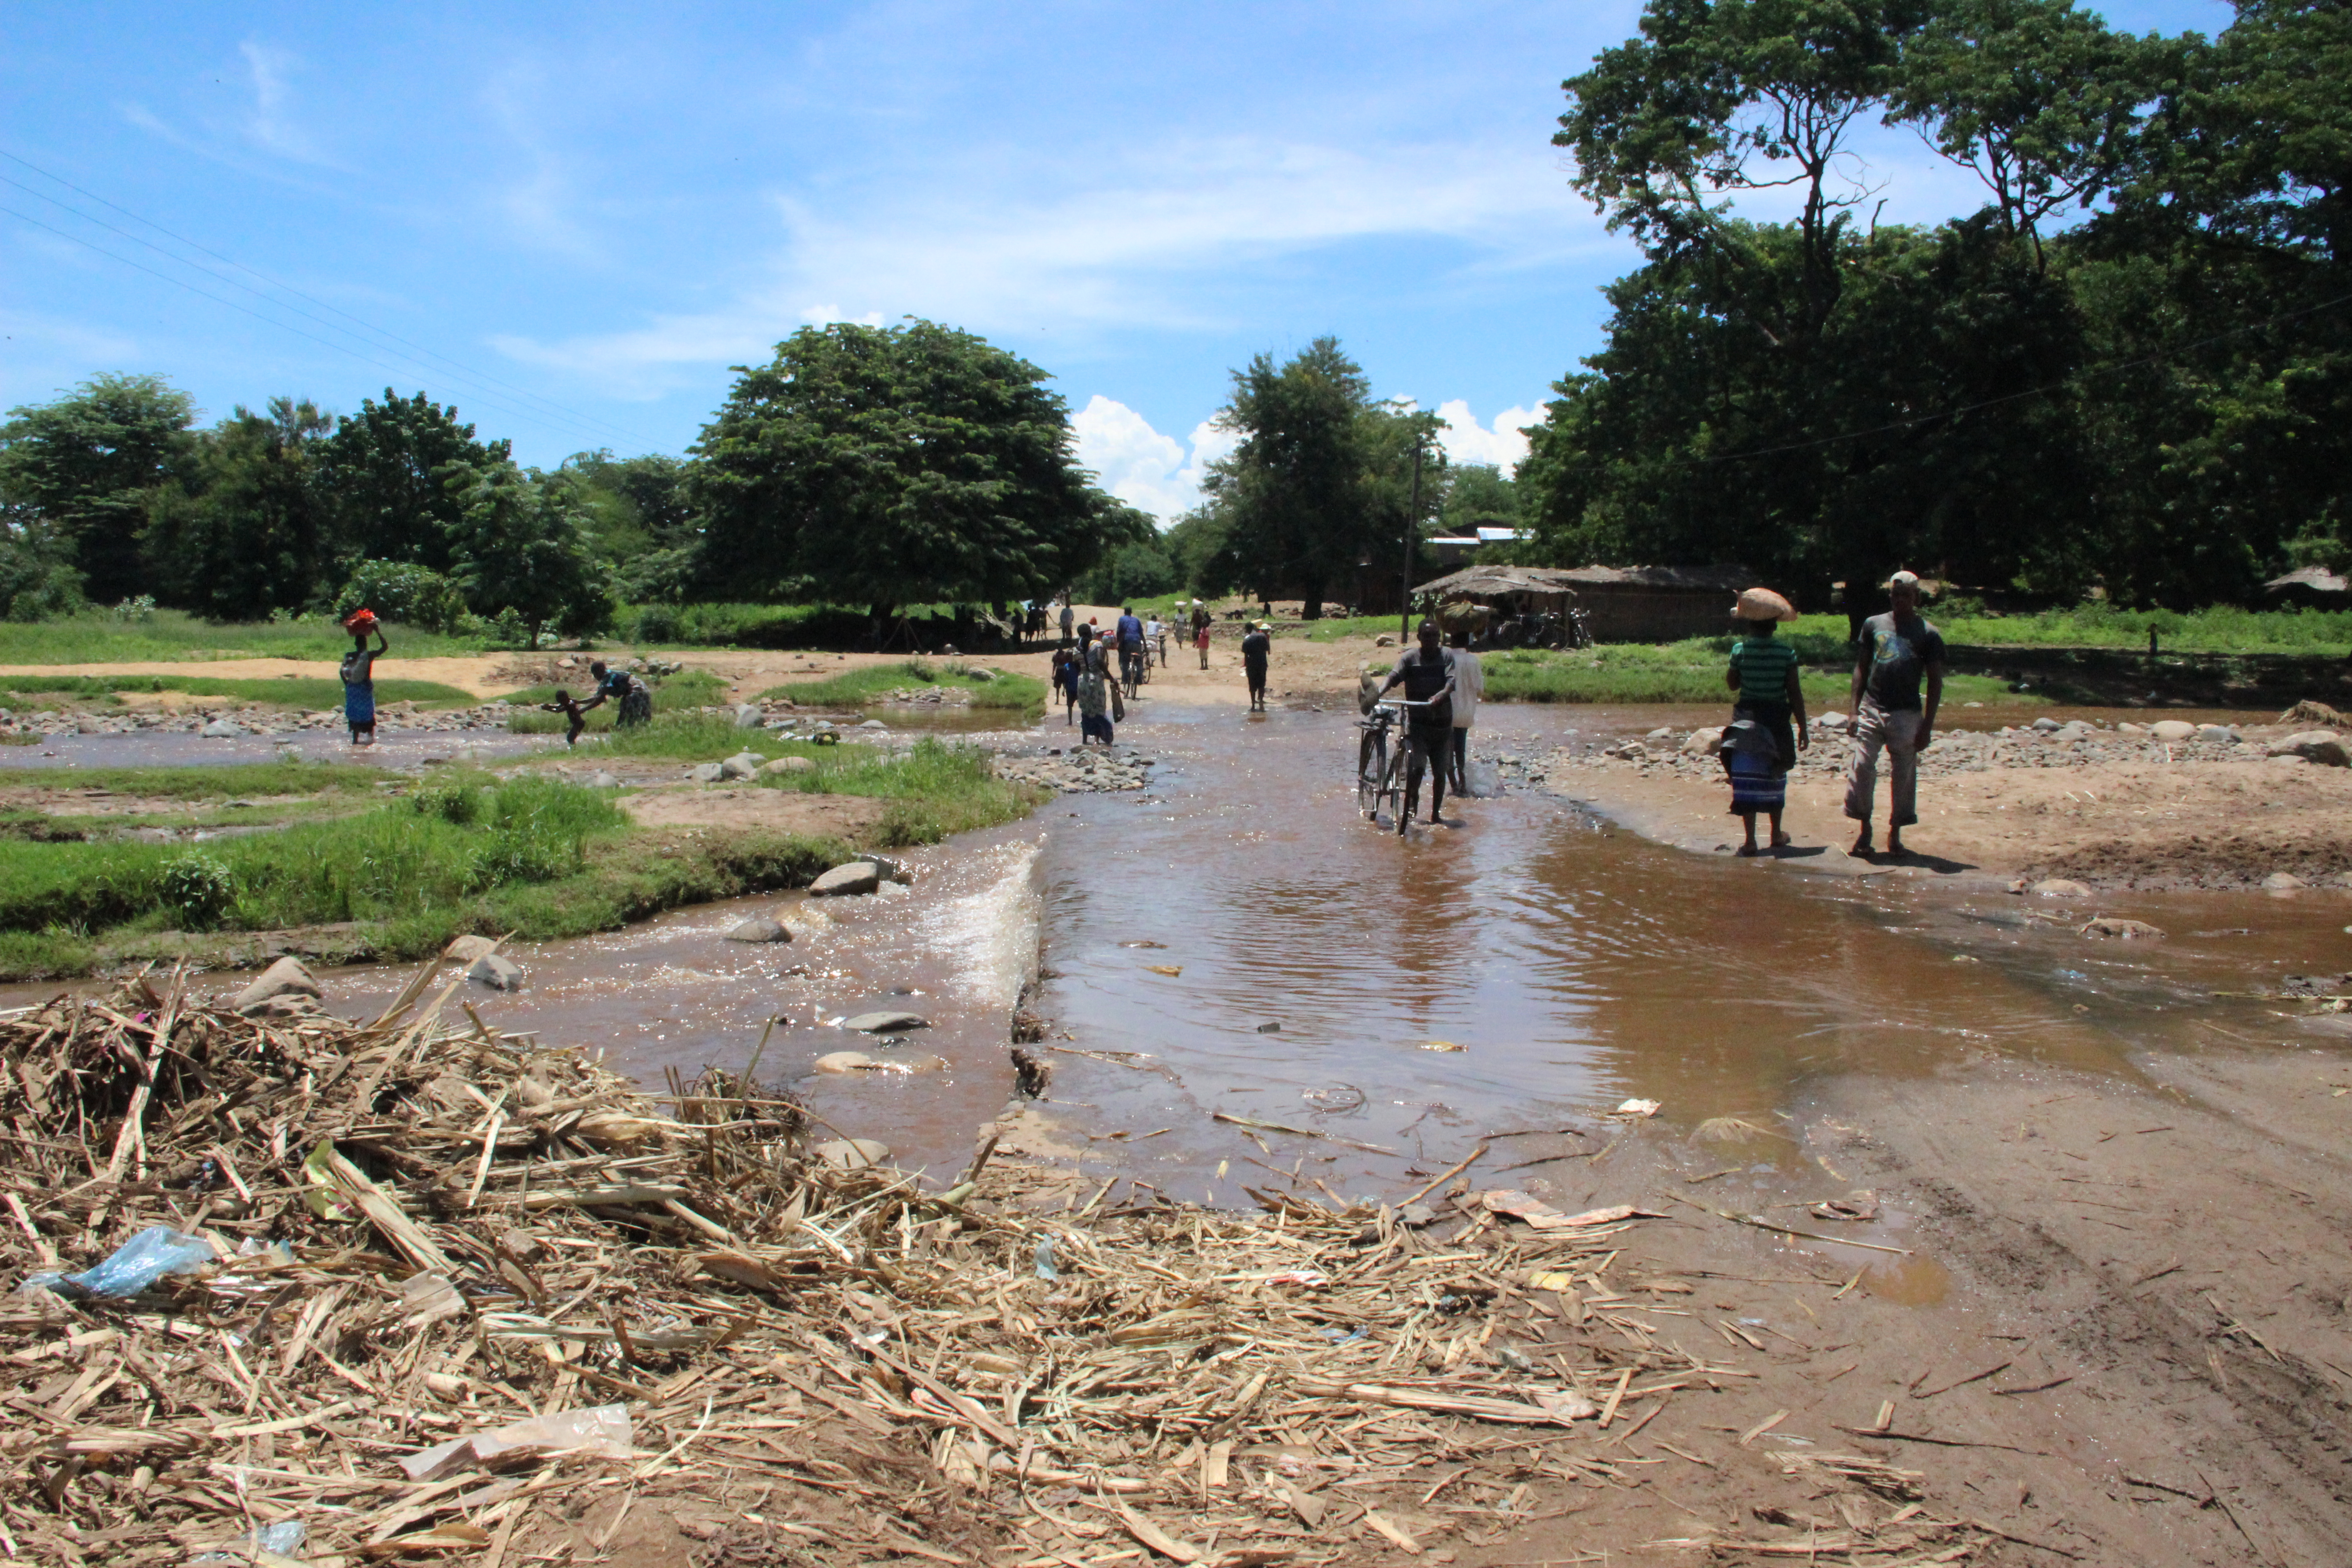 Bad Roads in Africa Africa Where Poor Roads